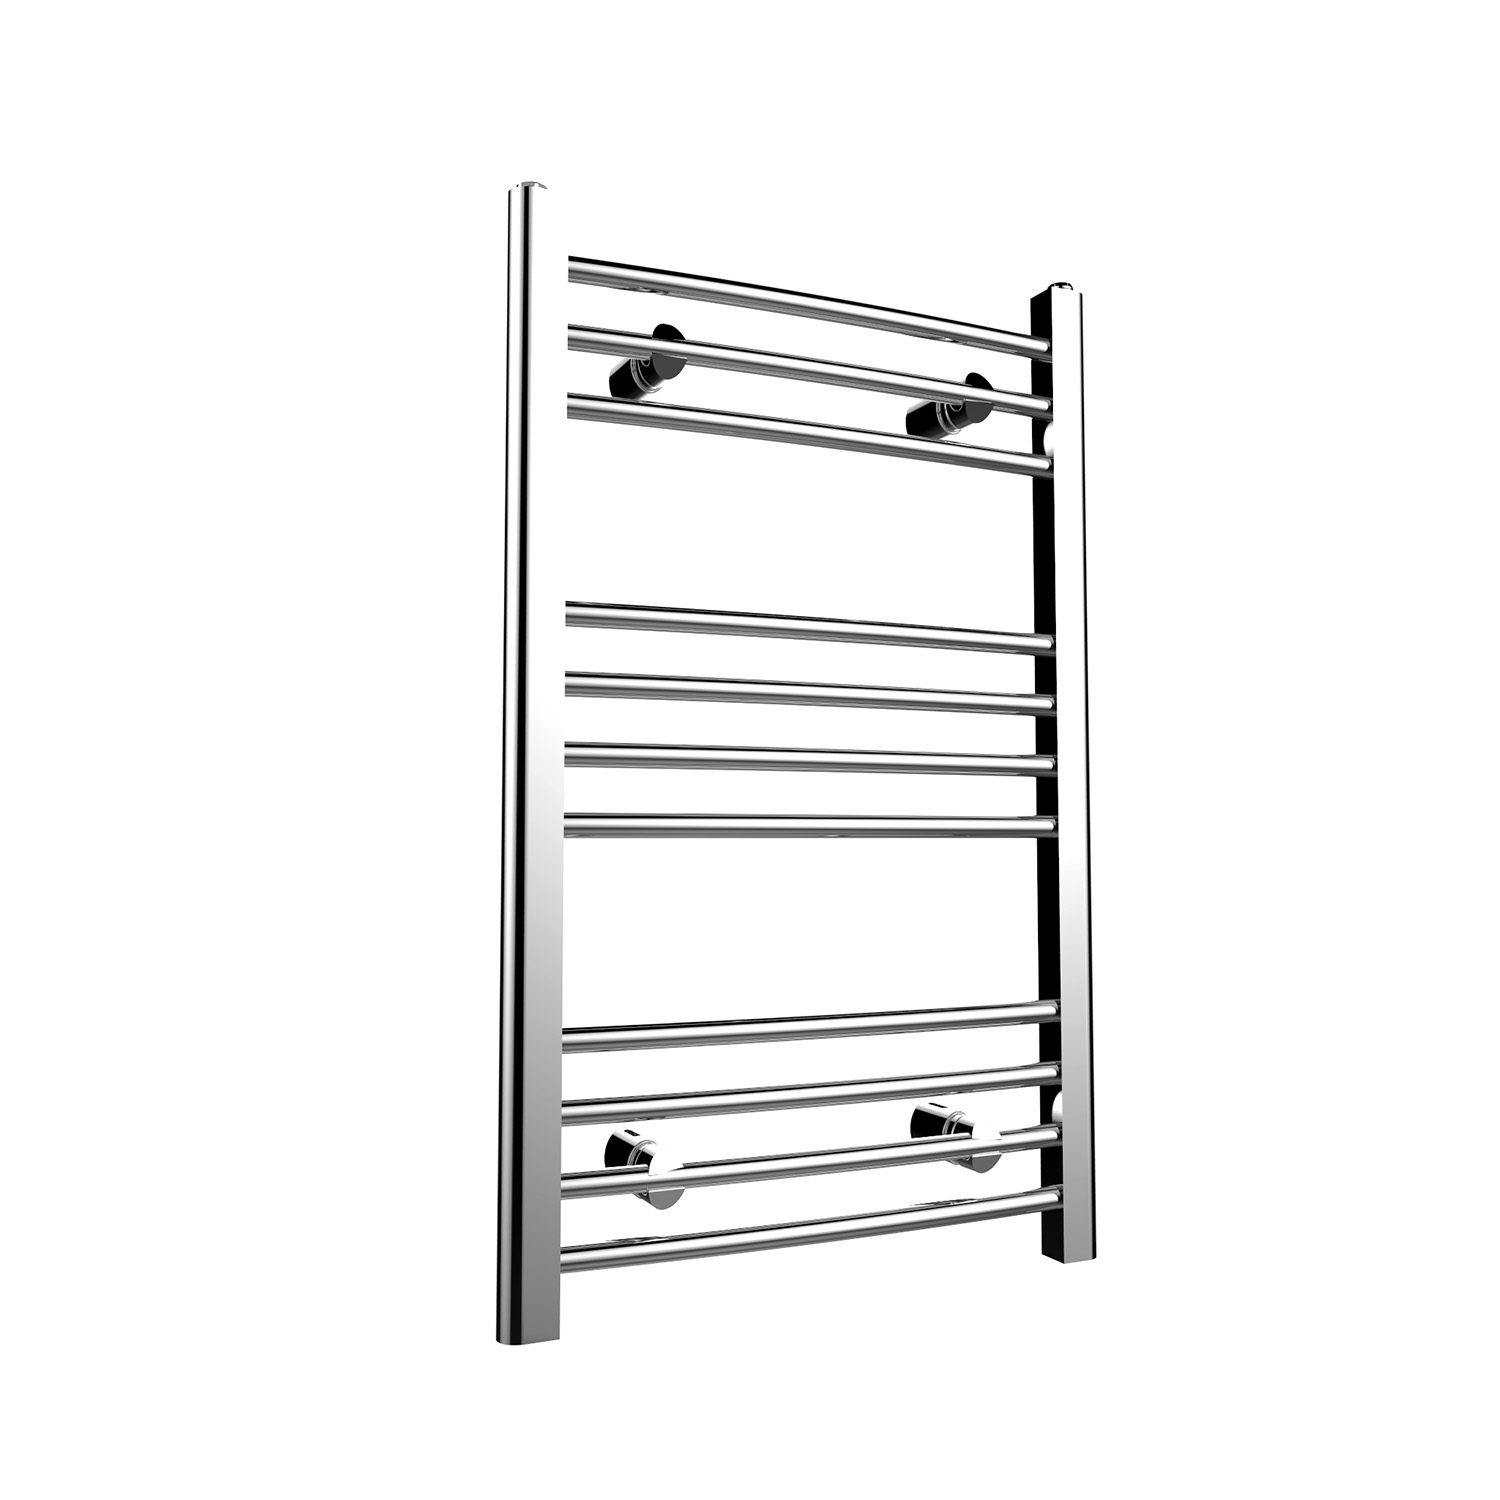 SALLY R2-85 Stainless Steel Towel Radiator